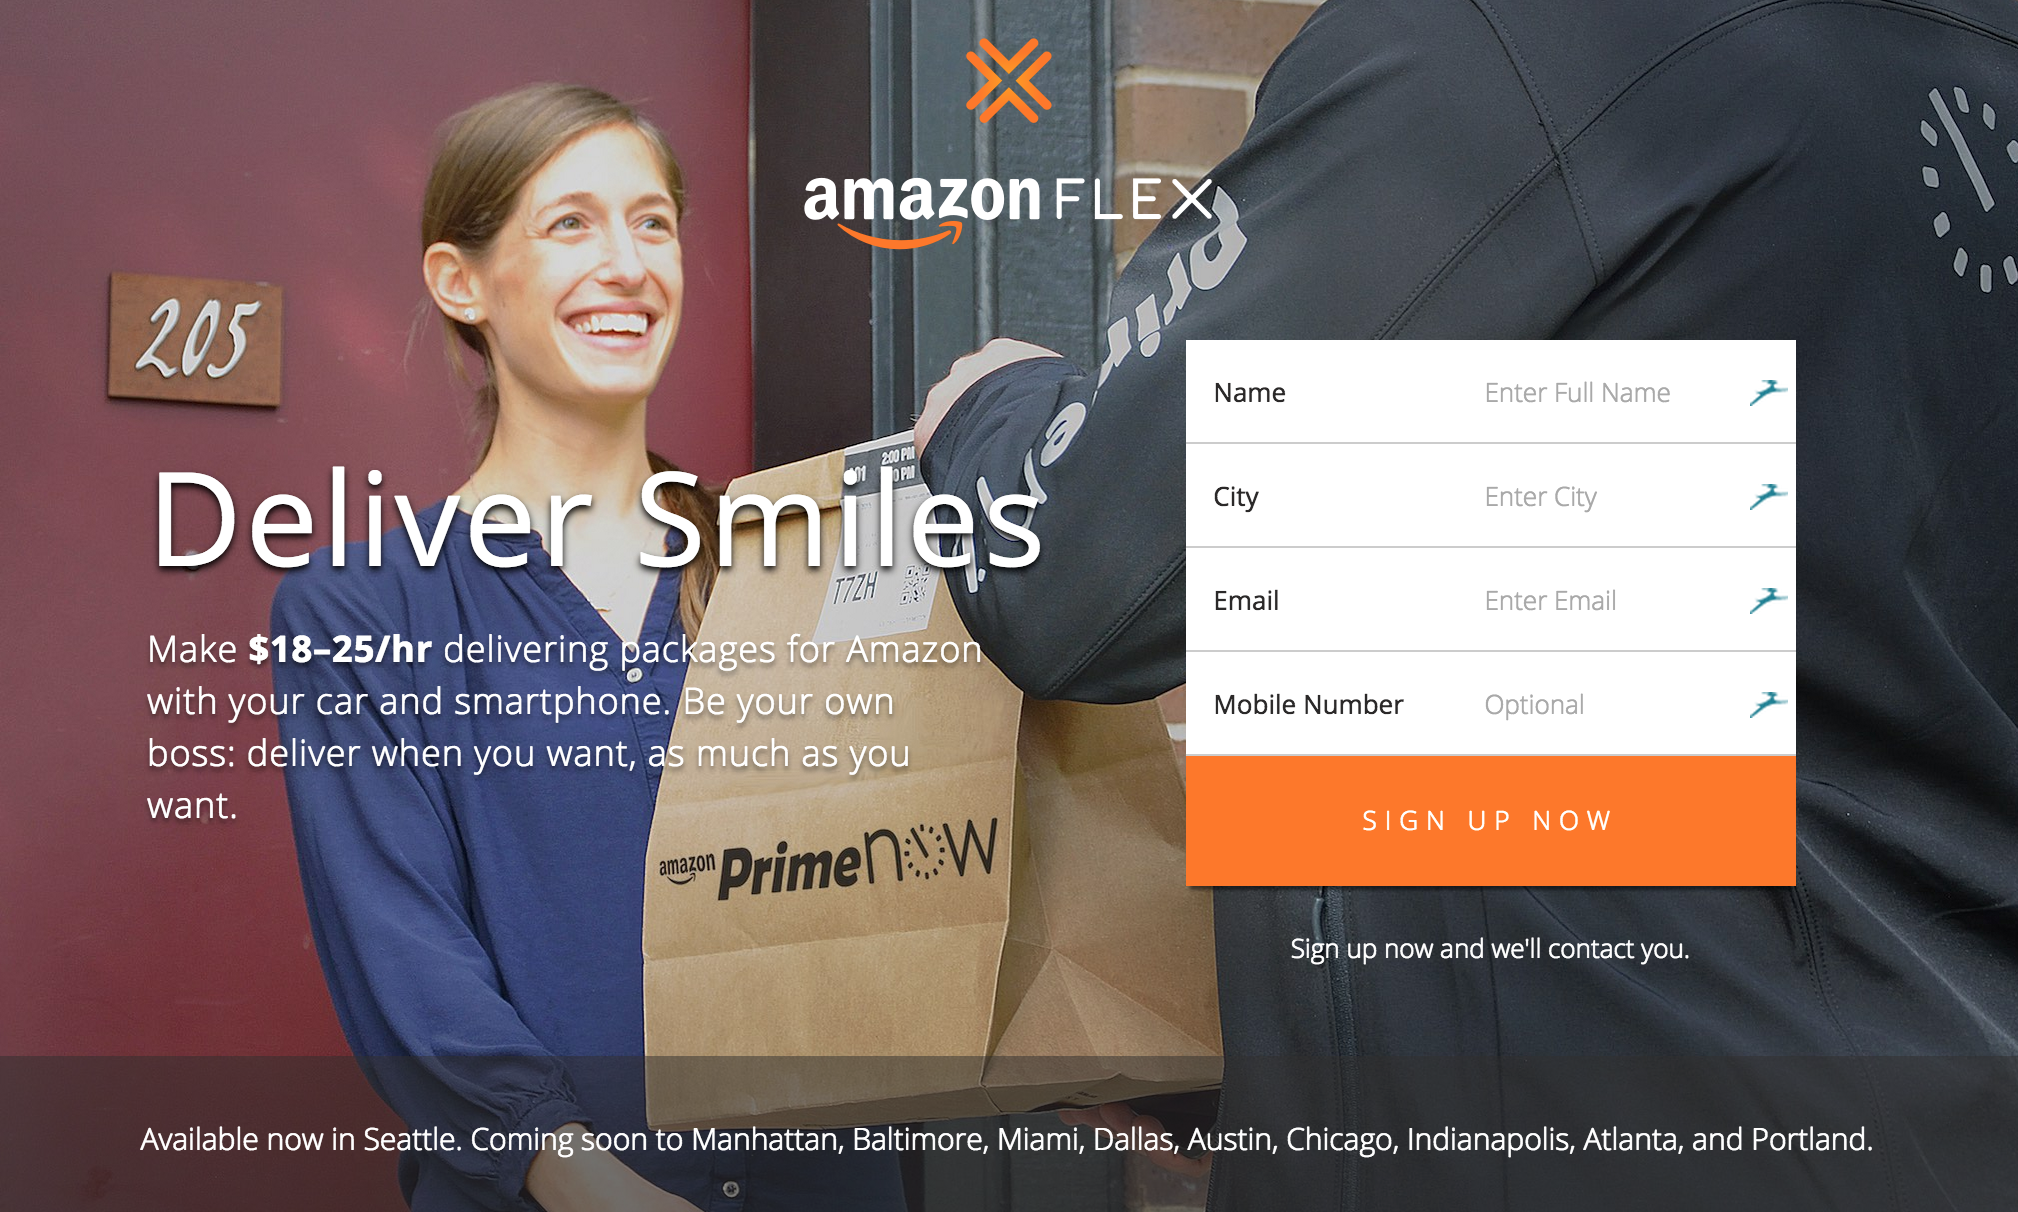 Amazon Launches Flex To Rival Postmates In On-Demand